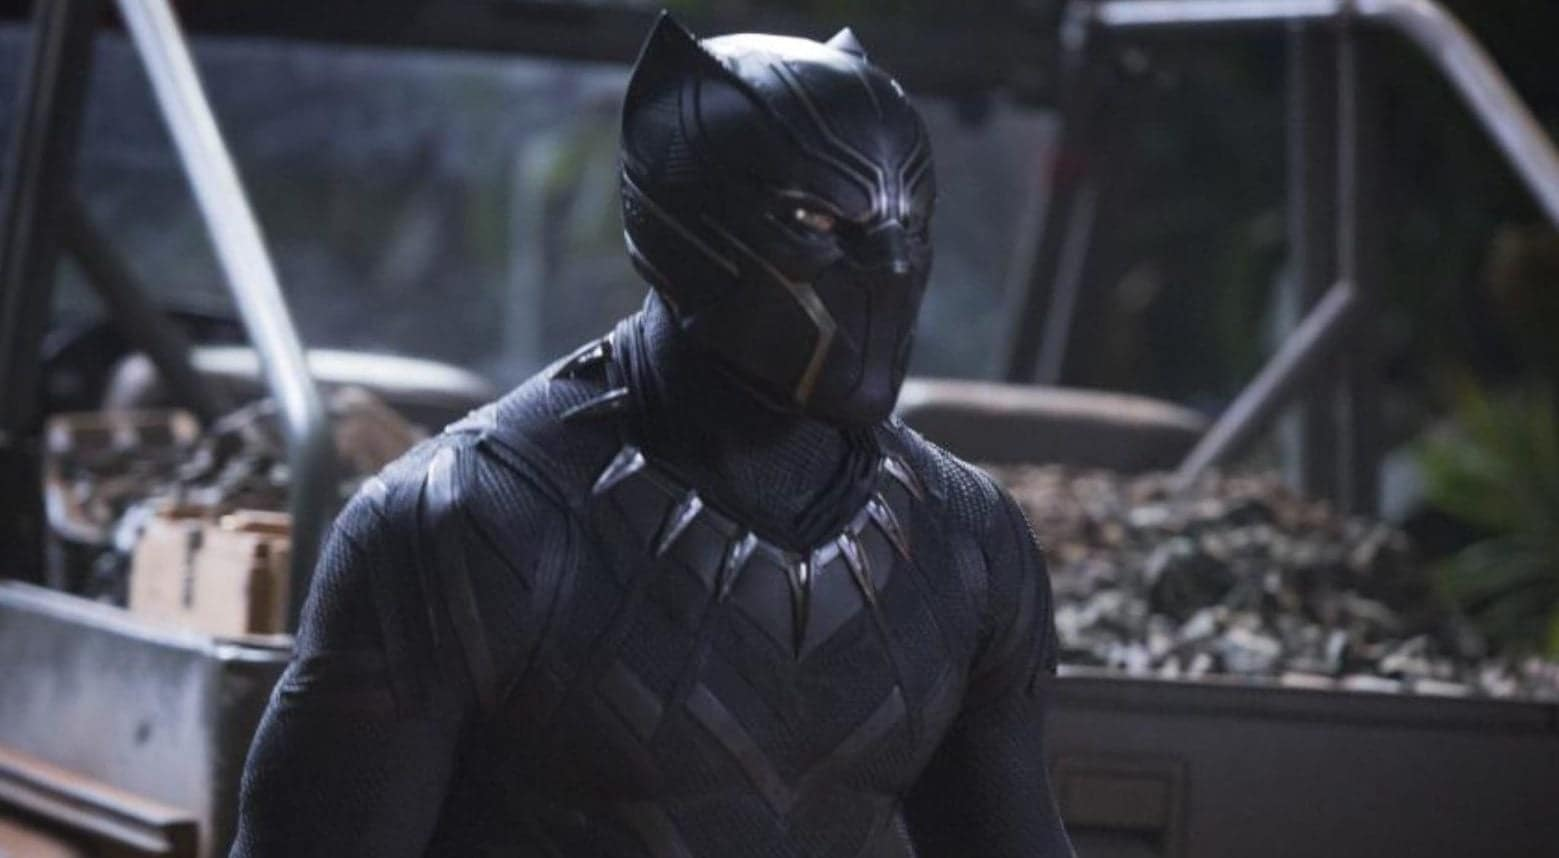 Within 17 days, Black Panther exceeds $500m mark in theatres